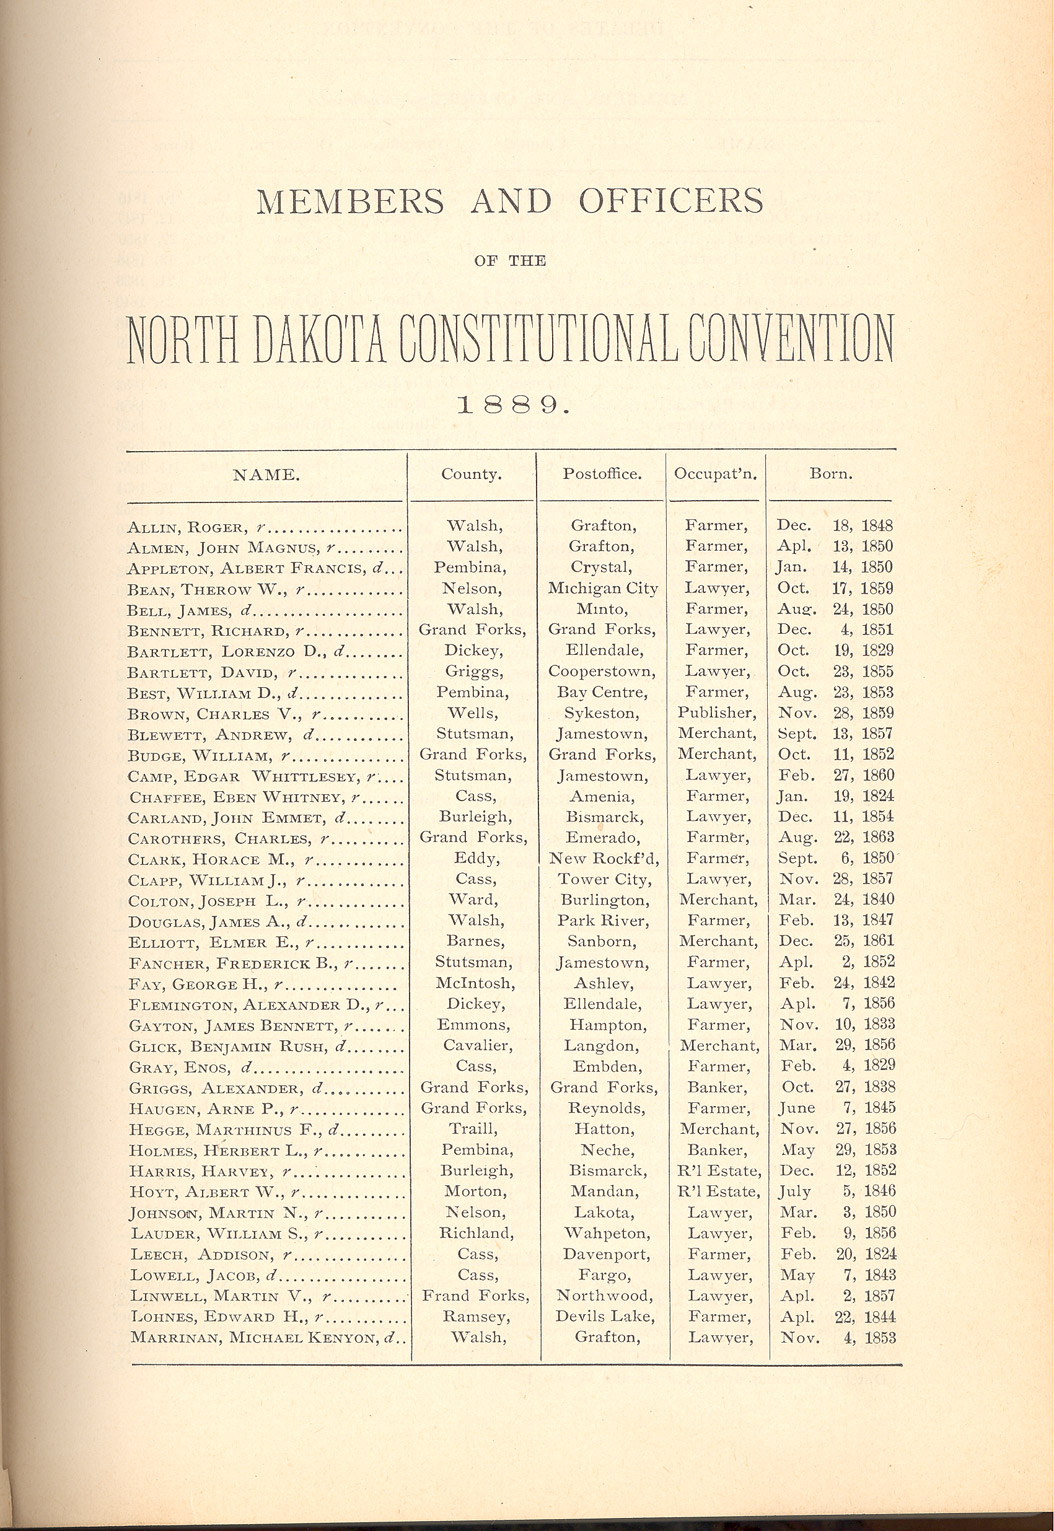 The delegates to the state constitutional convention met on July 4, 1889 to write a constitution for the new state. The delegates were farmers, businessmen, and lawyers. They debated each question carefully before deciding on the wording of each article of the constitution.